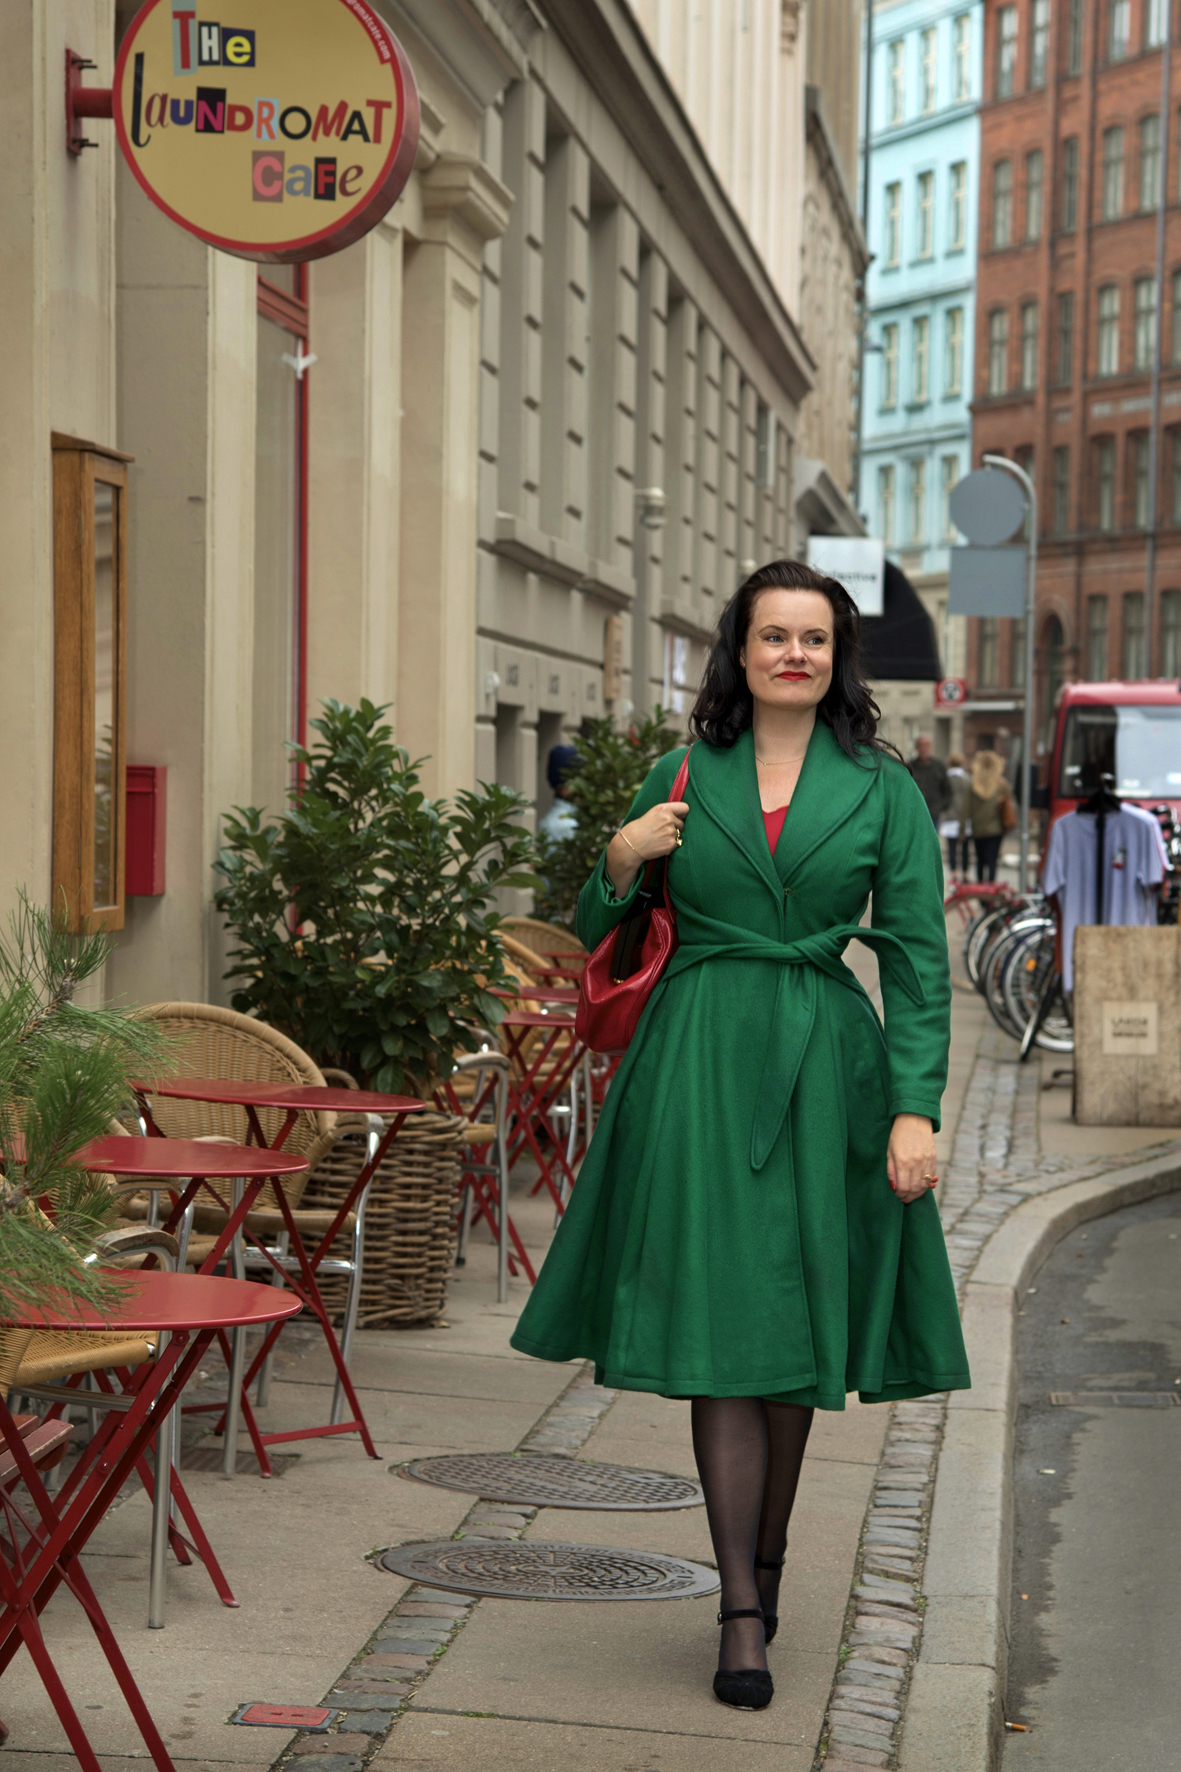 Author Leonora Christina Skov in our vintage inspired winter coat